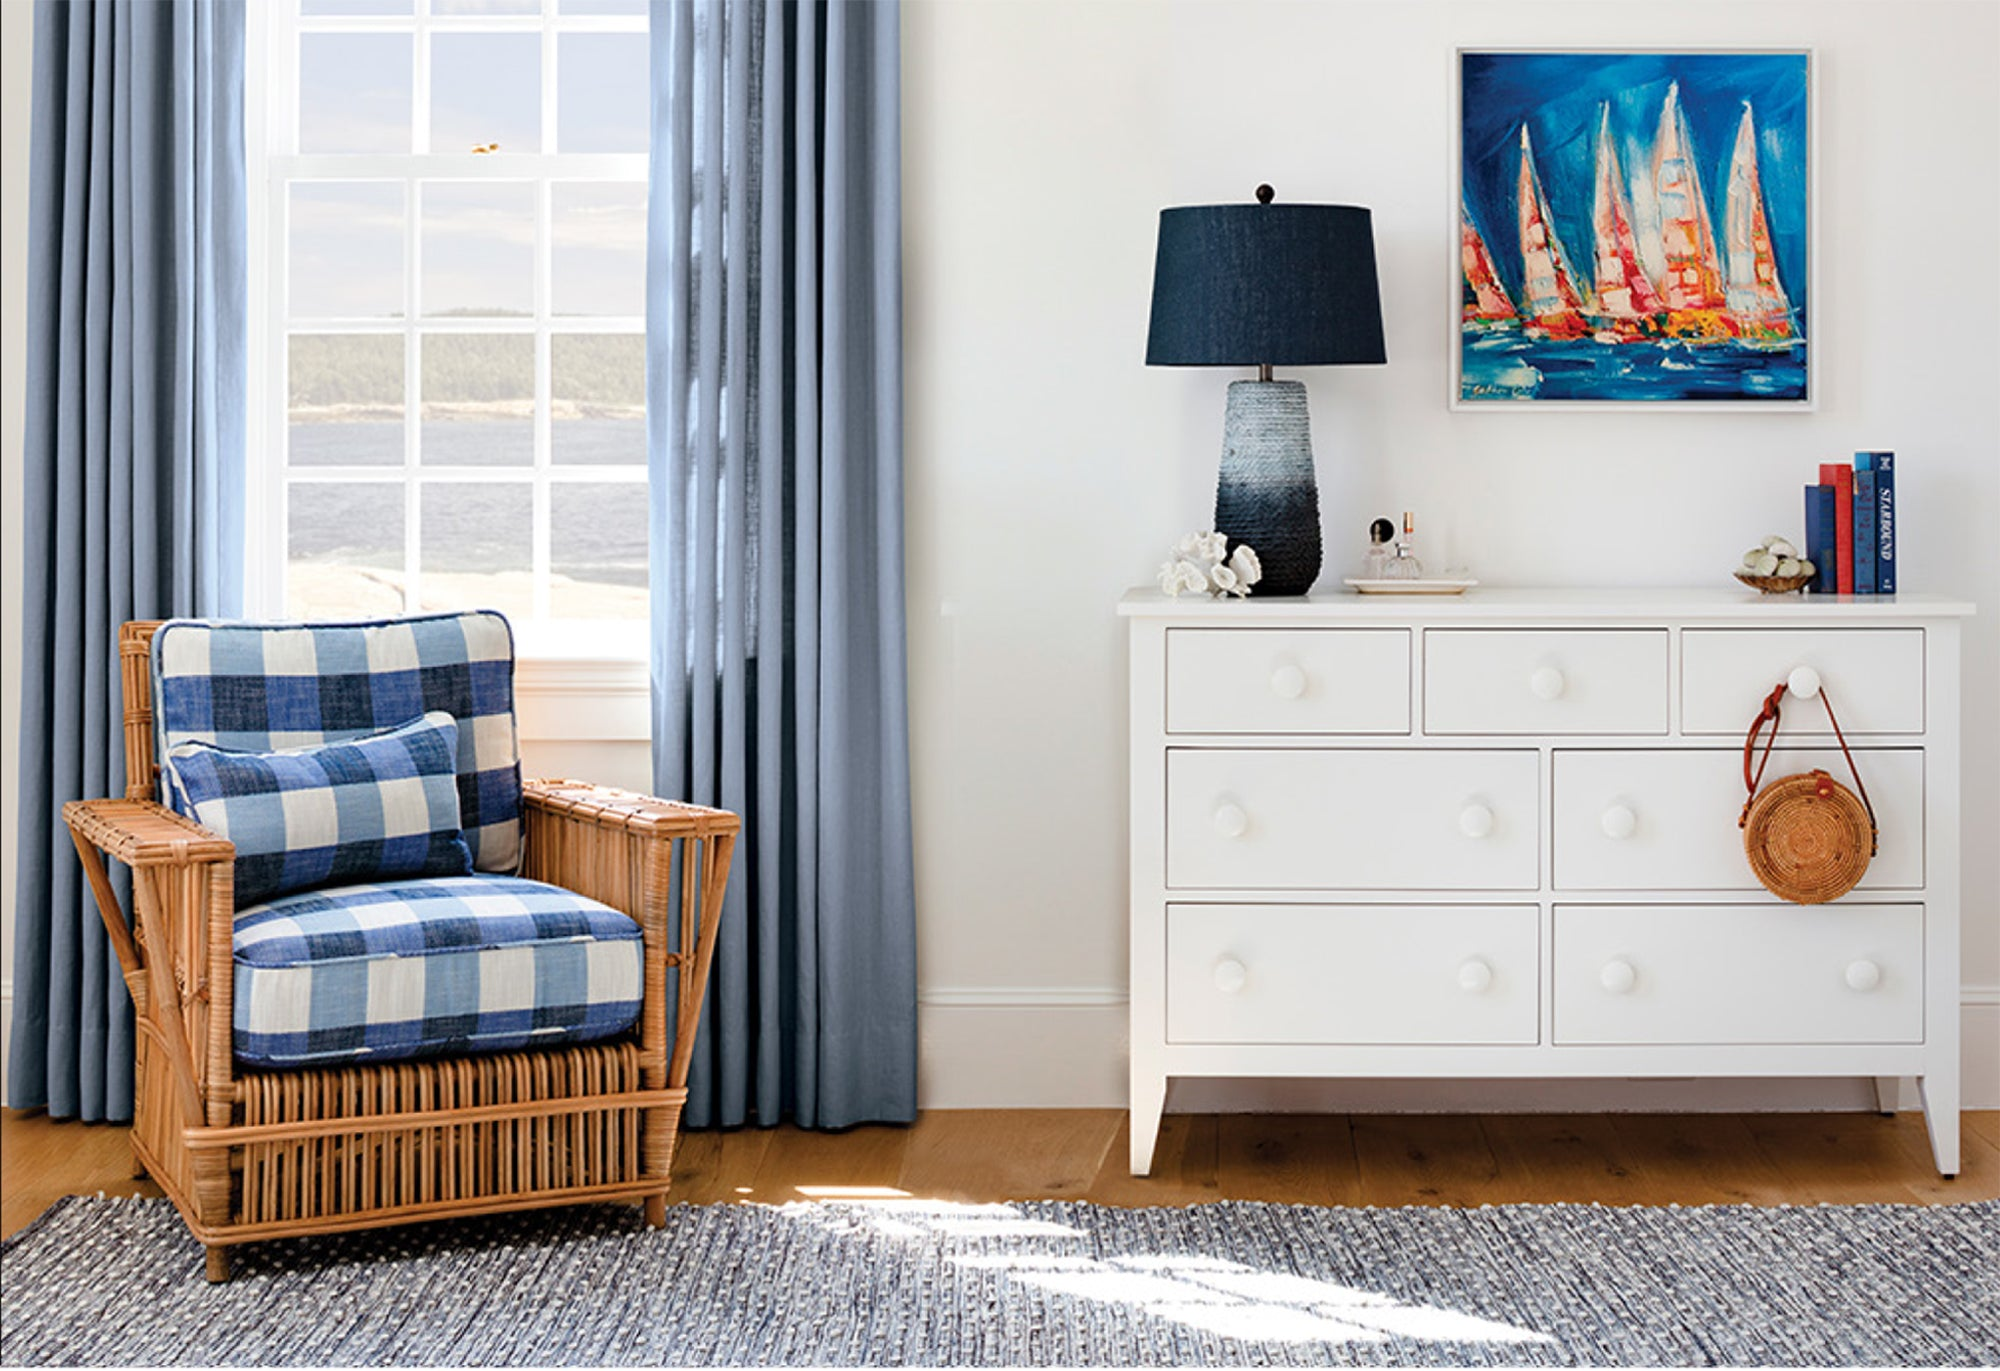 Room with white dresser and blue accents: wicker chair with denim cushions, Marlow lamp, indoor/outdoor rug, Regatta artwork